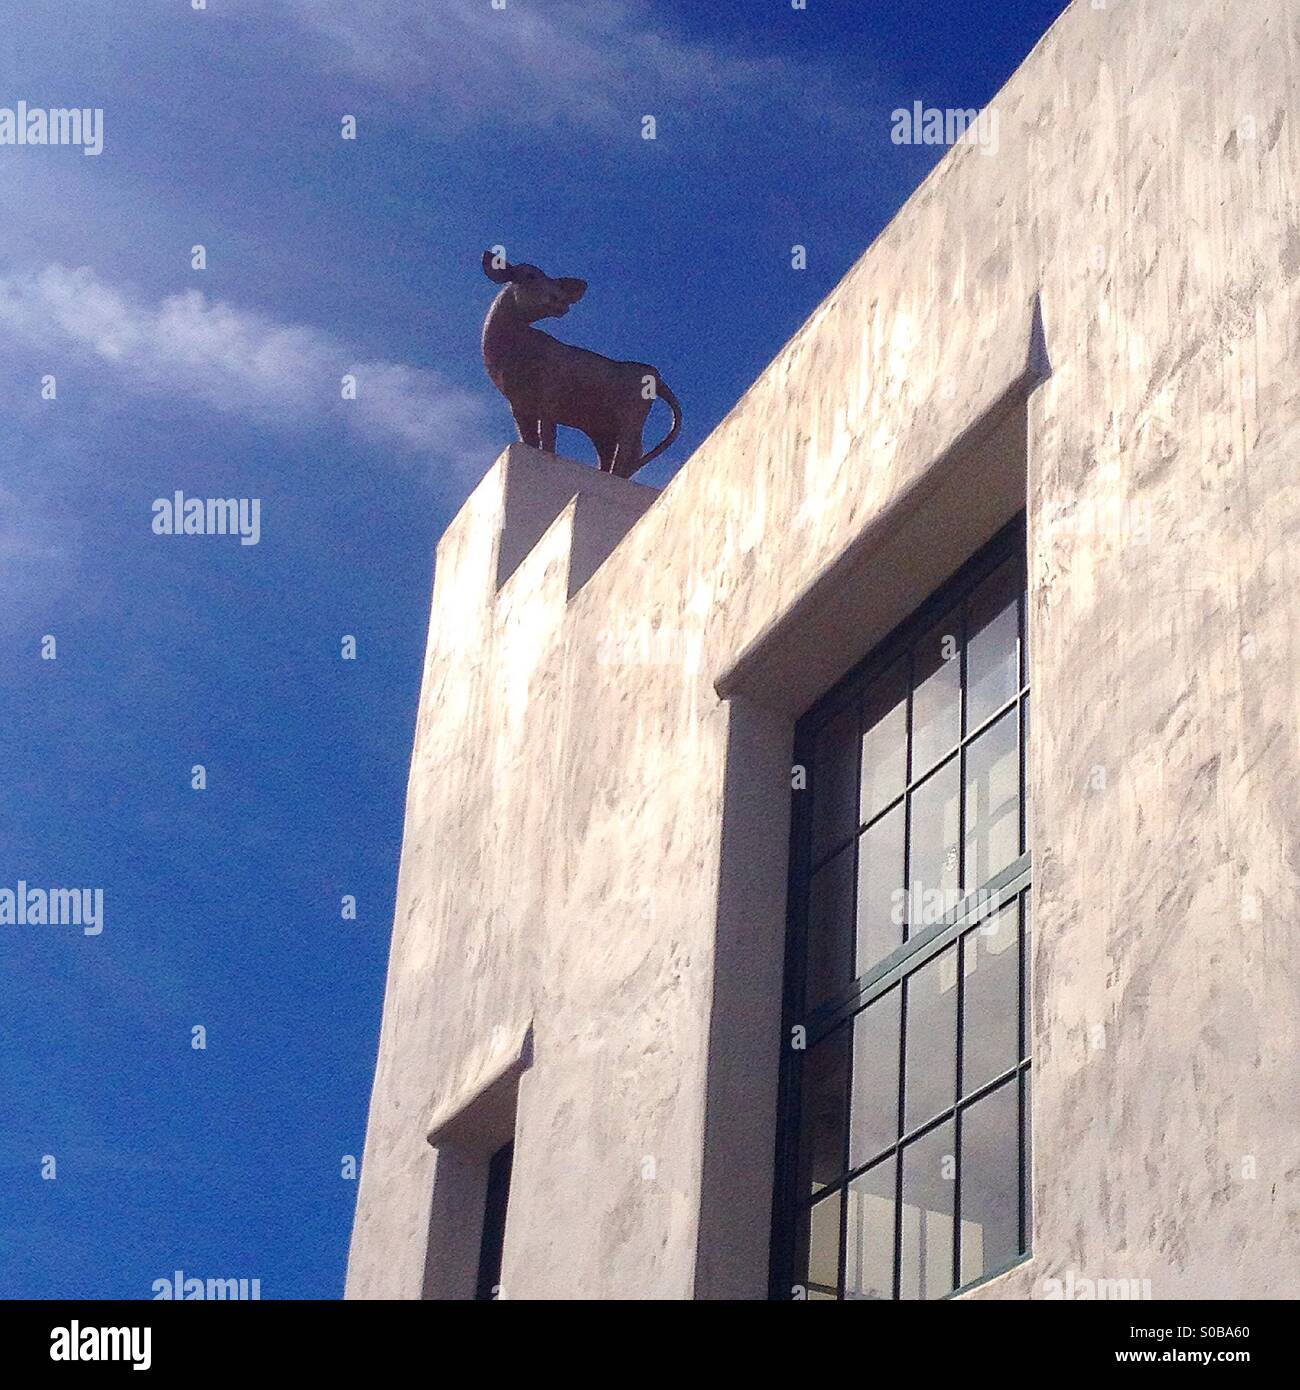 Calf on roof - Stock Image